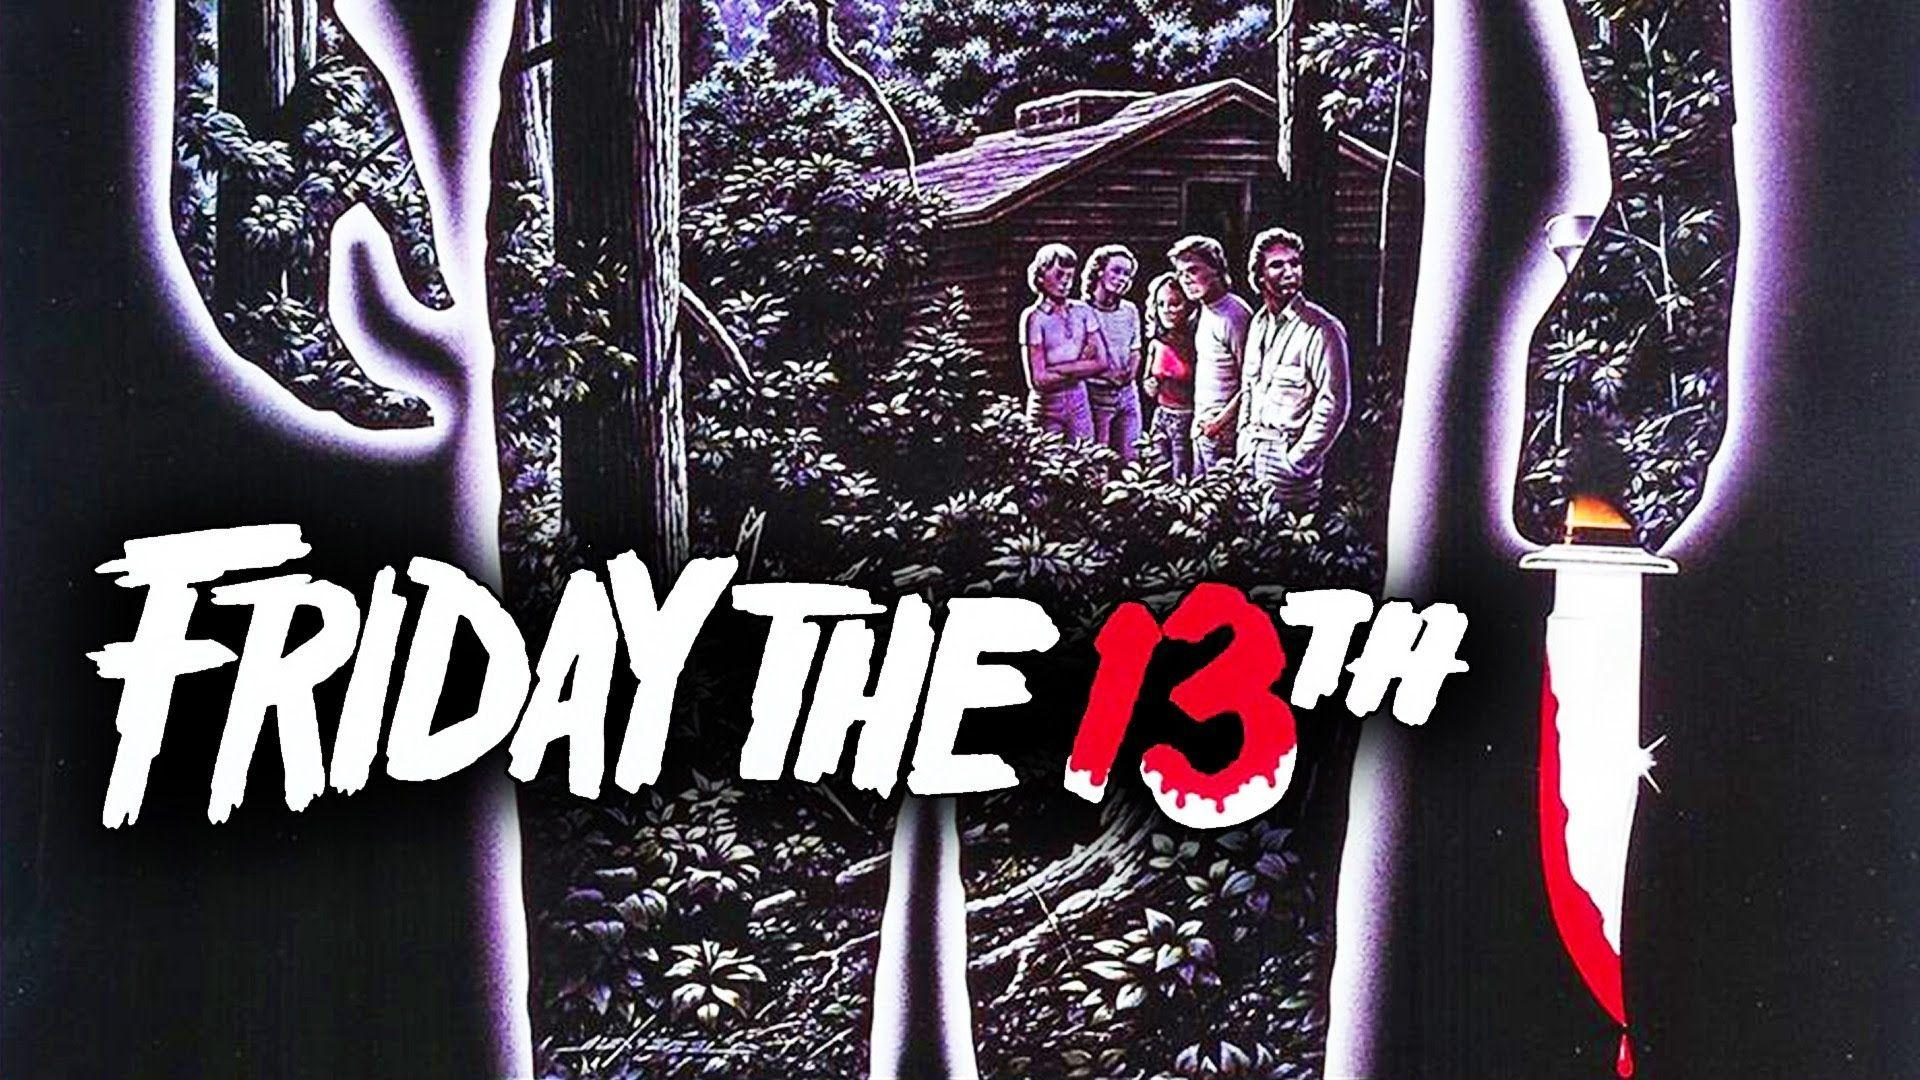 Friday the 13th HD Wallpapers